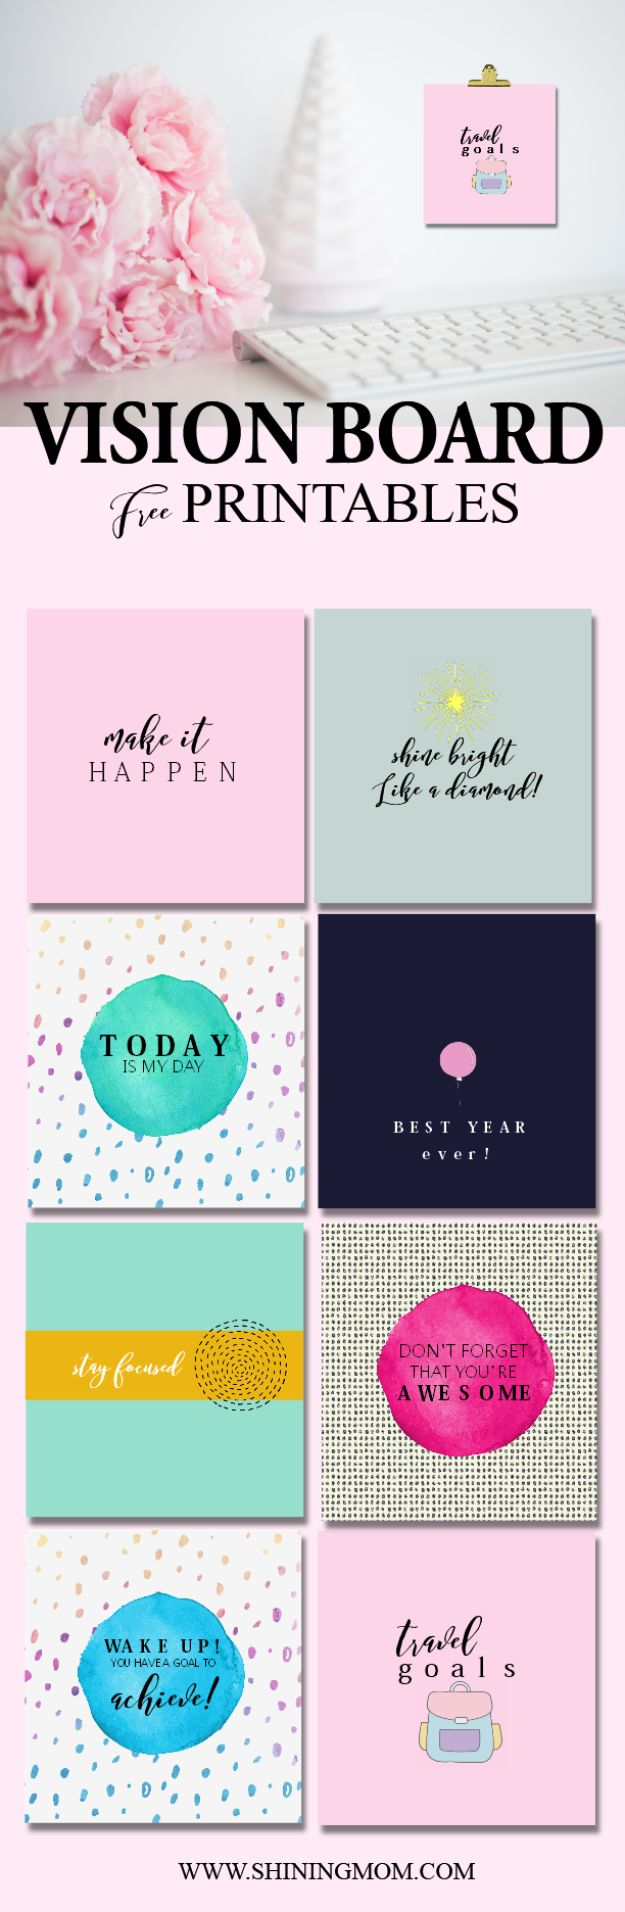 Free Printables For Your Walls - Vision Board Free Printable - Easy Canvas Ideas With Free Downloadable Artwork and Quote Sayings - Best Free Prints for Wall Art and Picture to Print for Home and Bedroom Decor - Signs for the Home, Organization, Office - Quotes for Bedroom and Kitchens, Vintage Bathroom Pictures - Downloadable Printable for Kids - DIY and Crafts by DIY JOY #wallart #freeprintables #diyideas #diyart #walldecor #diyhomedecor #freeprintables